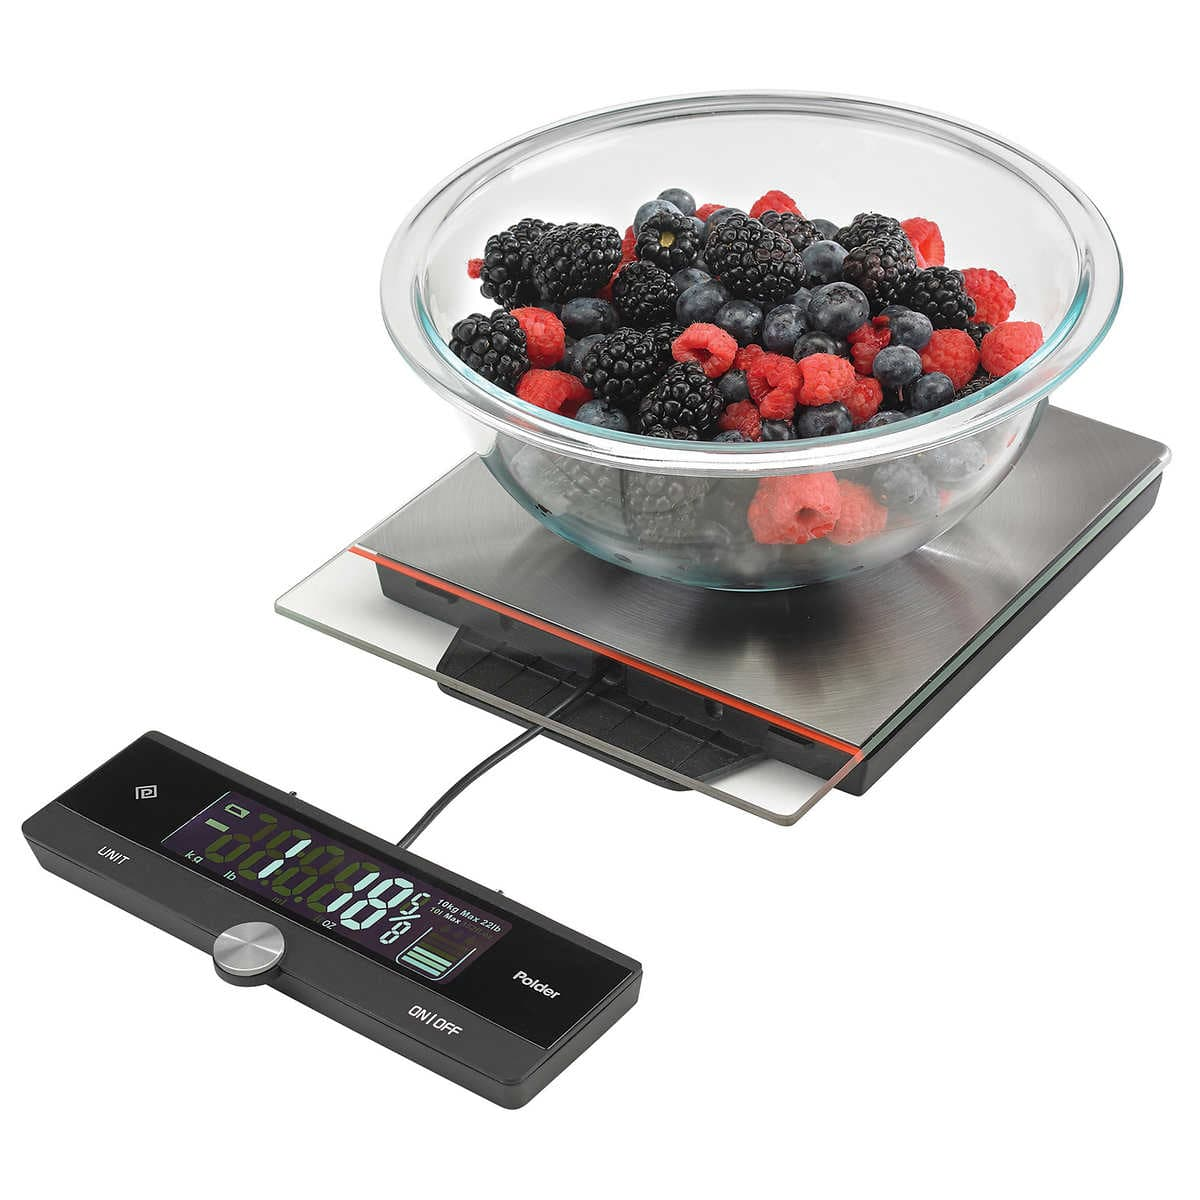 Polder 22lb. Digital Kitchen Scale with Pull-Out Display $15.99 @ costco stores or online